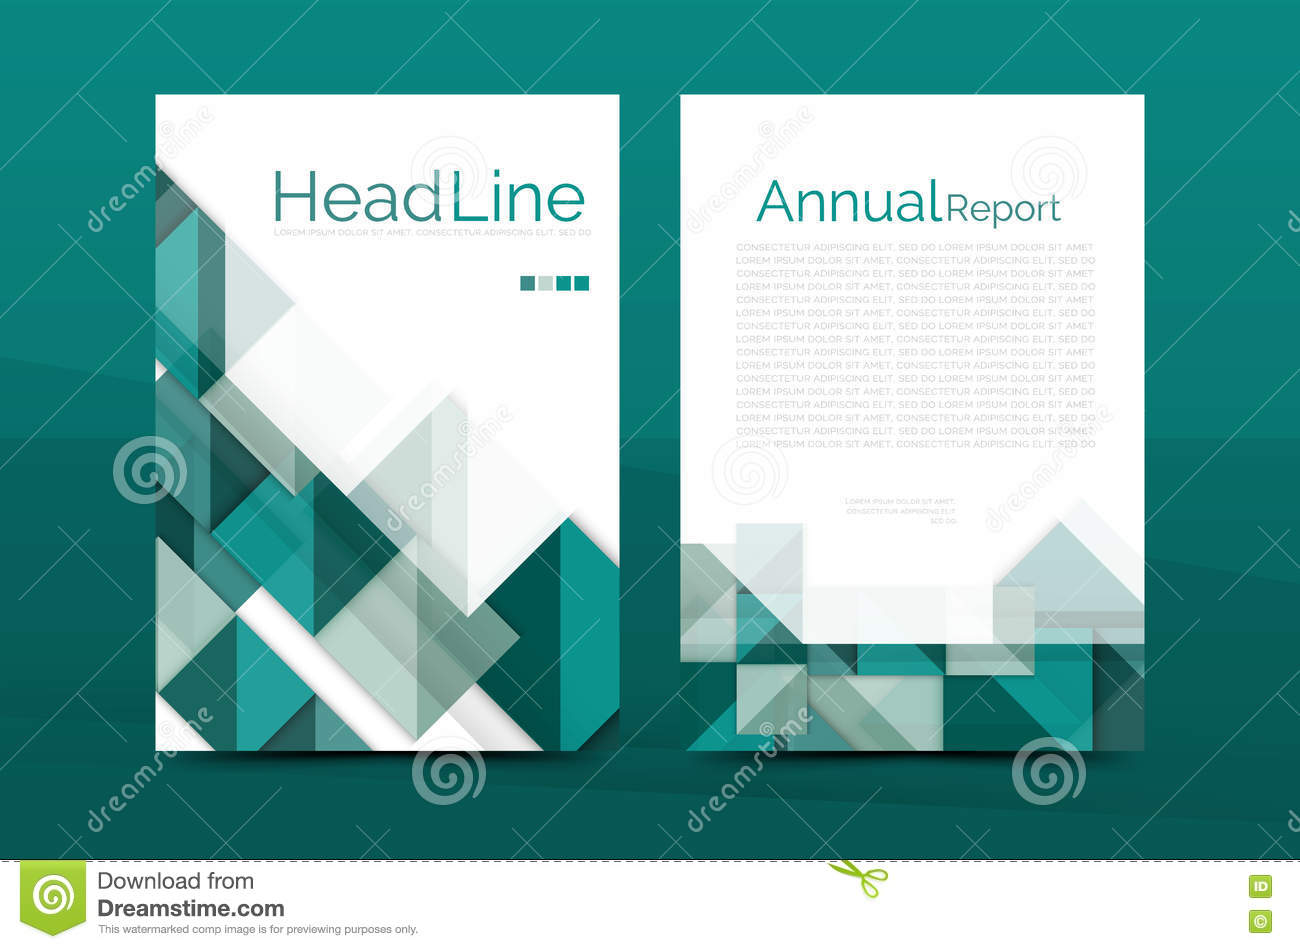 Geometric a4 front page business annual report print template stock download geometric a4 front page business annual report print template stock vector illustration of accmission Gallery